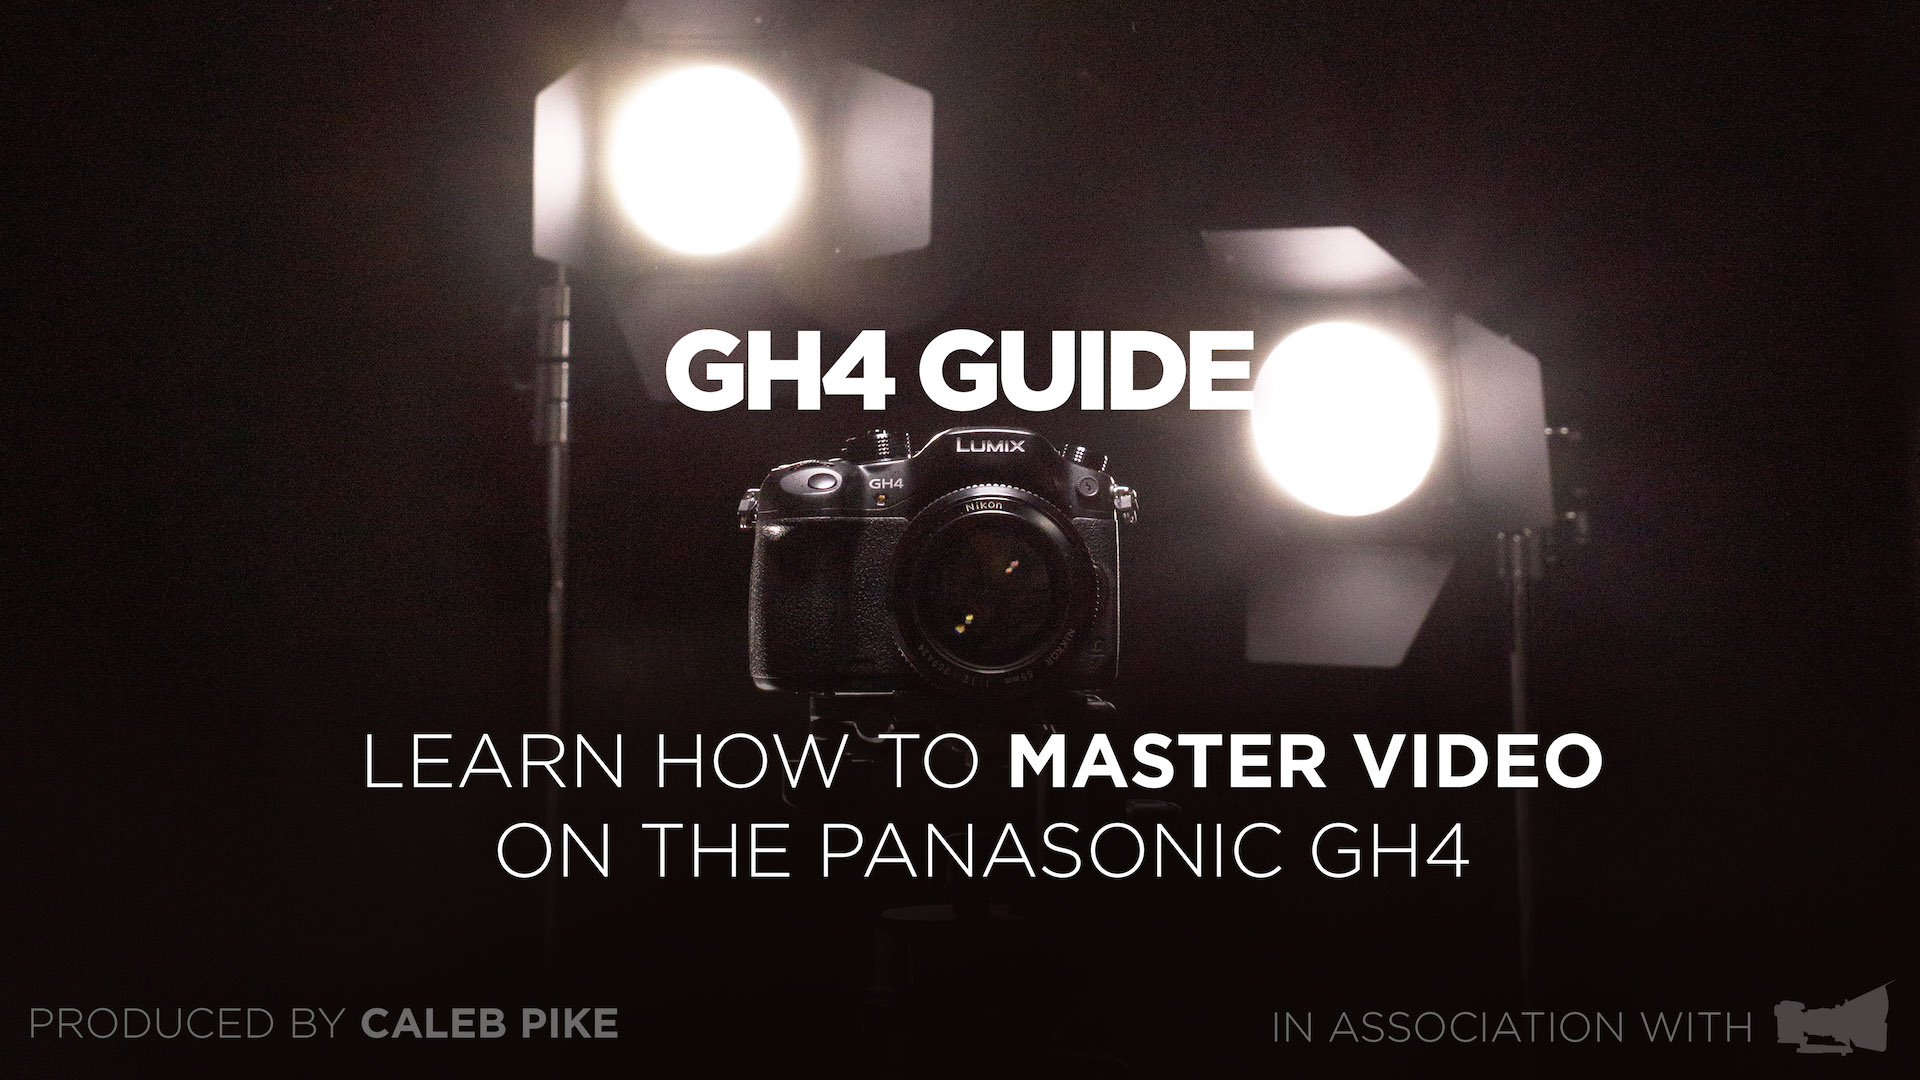 The GH4 Guide is Now Available!